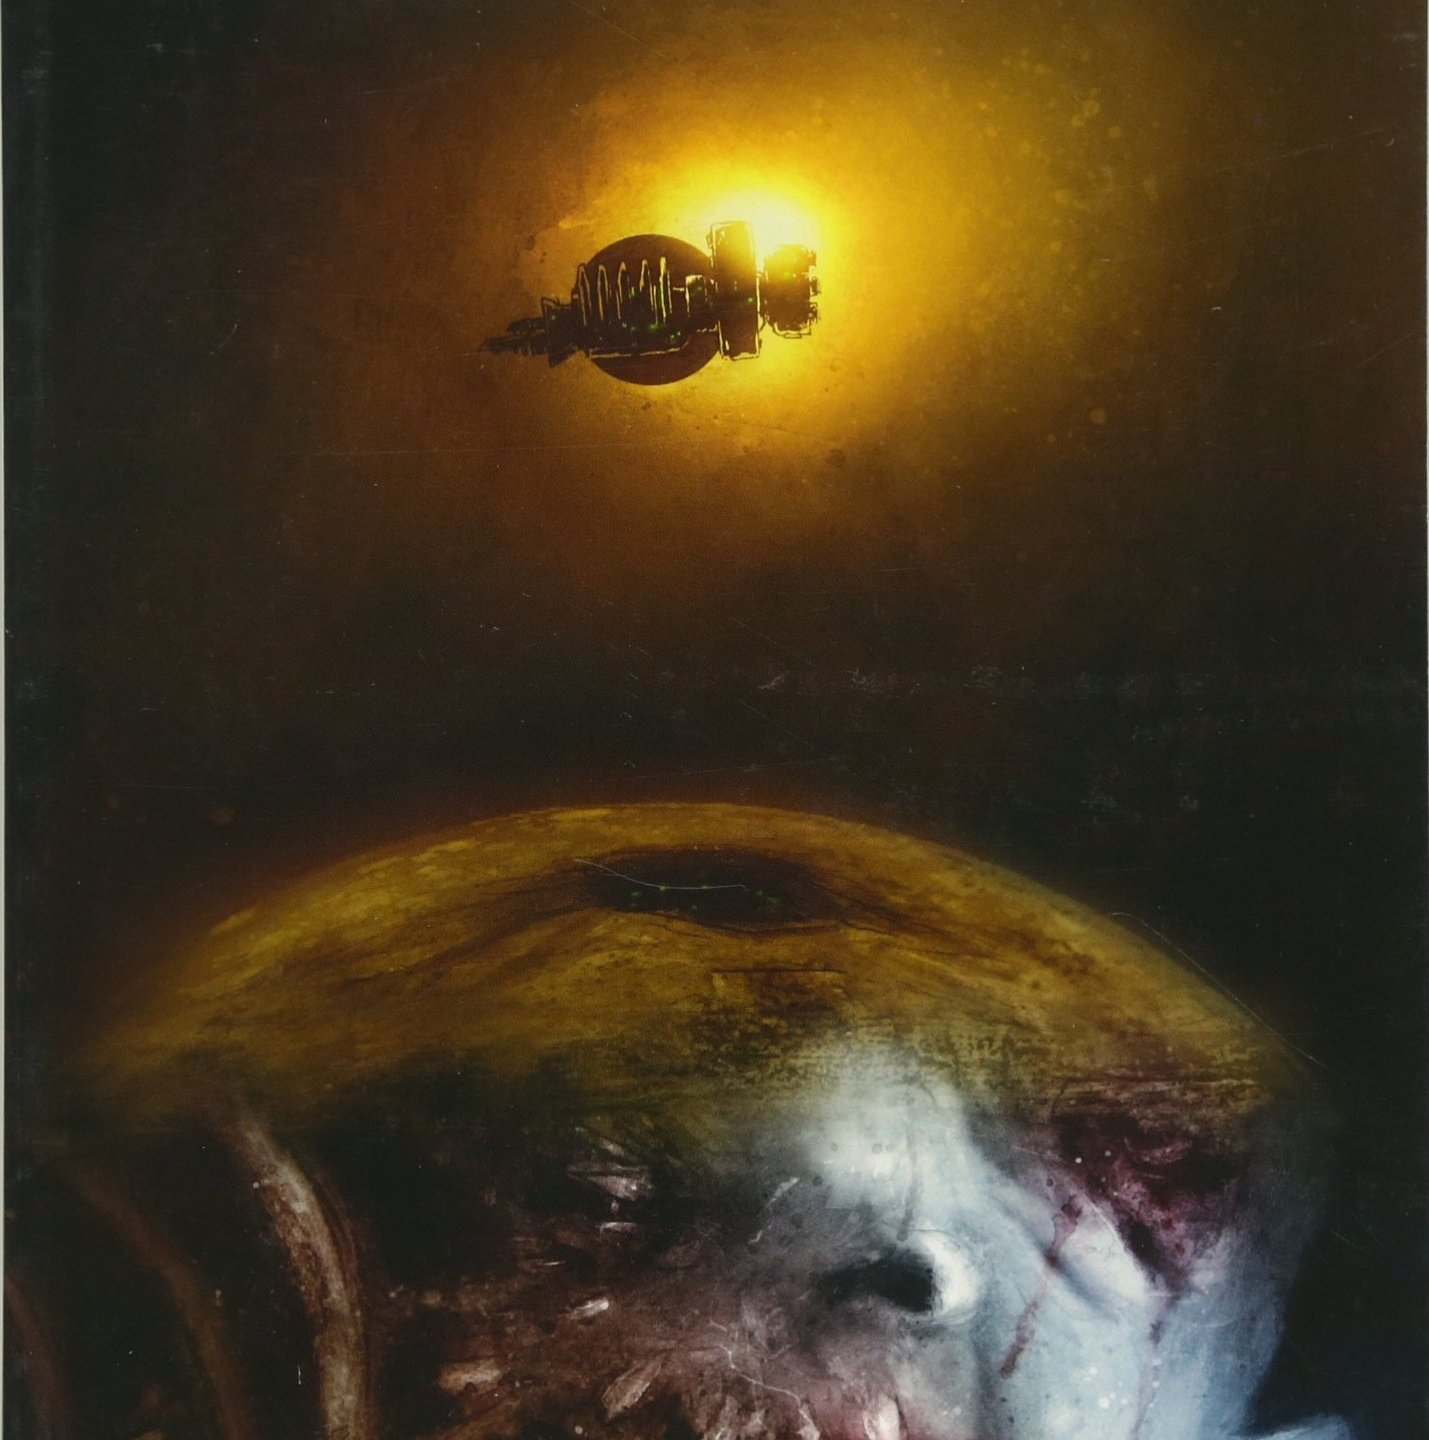 Dead Space, by Ben Templesmith